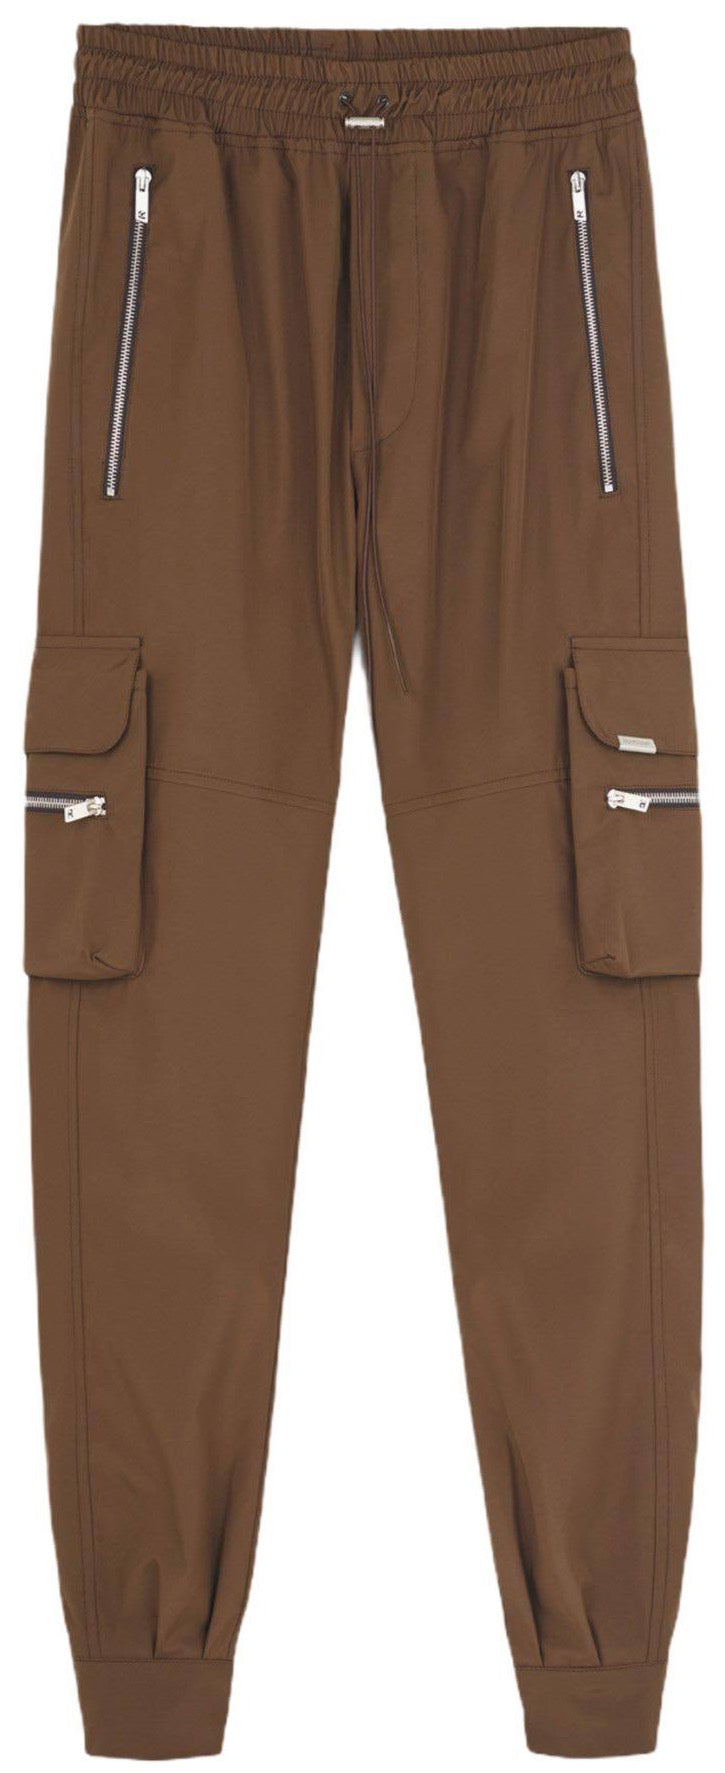 REPRESENT MILITARY PANT - BROWN GLADYS